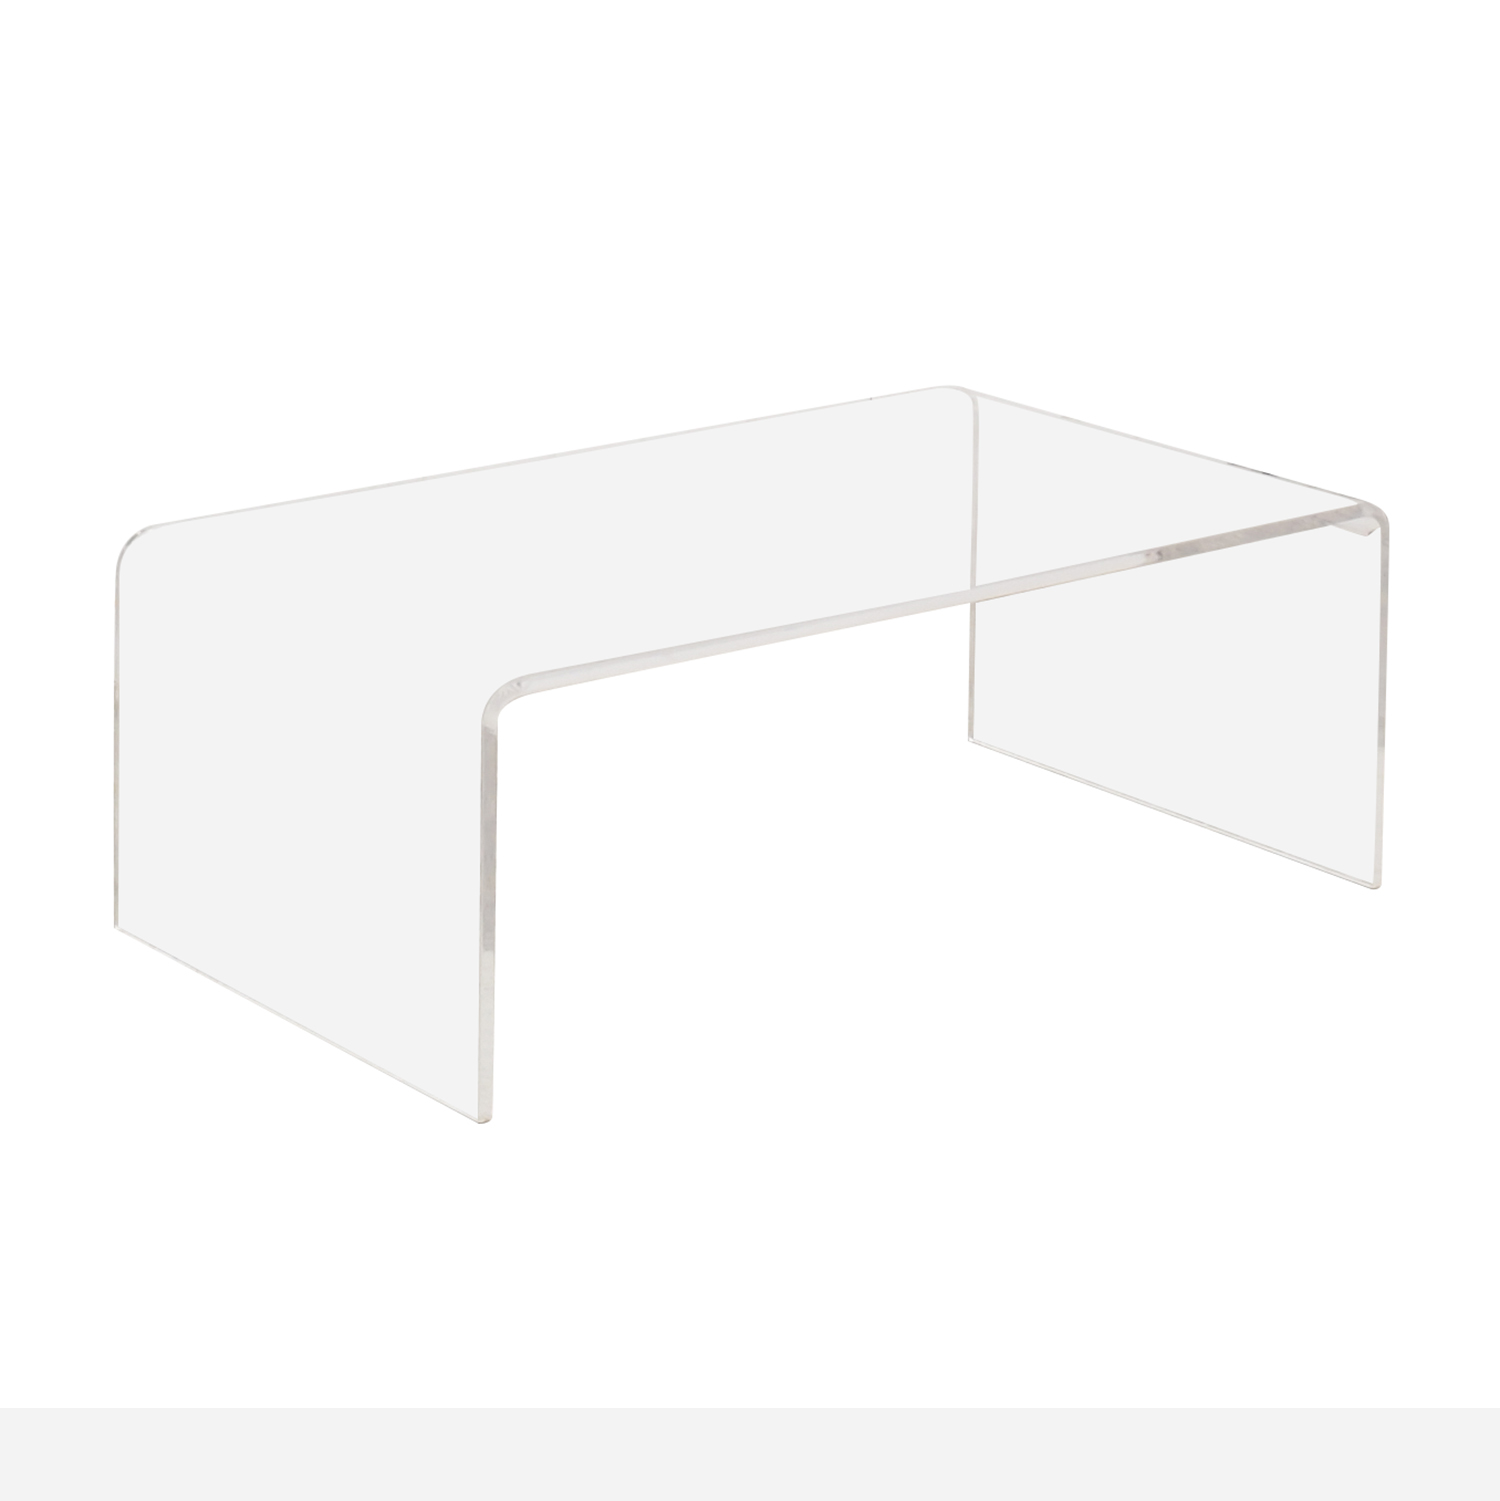 CB2 CB2 Peekaboo Acrylic Coffee Table on sale